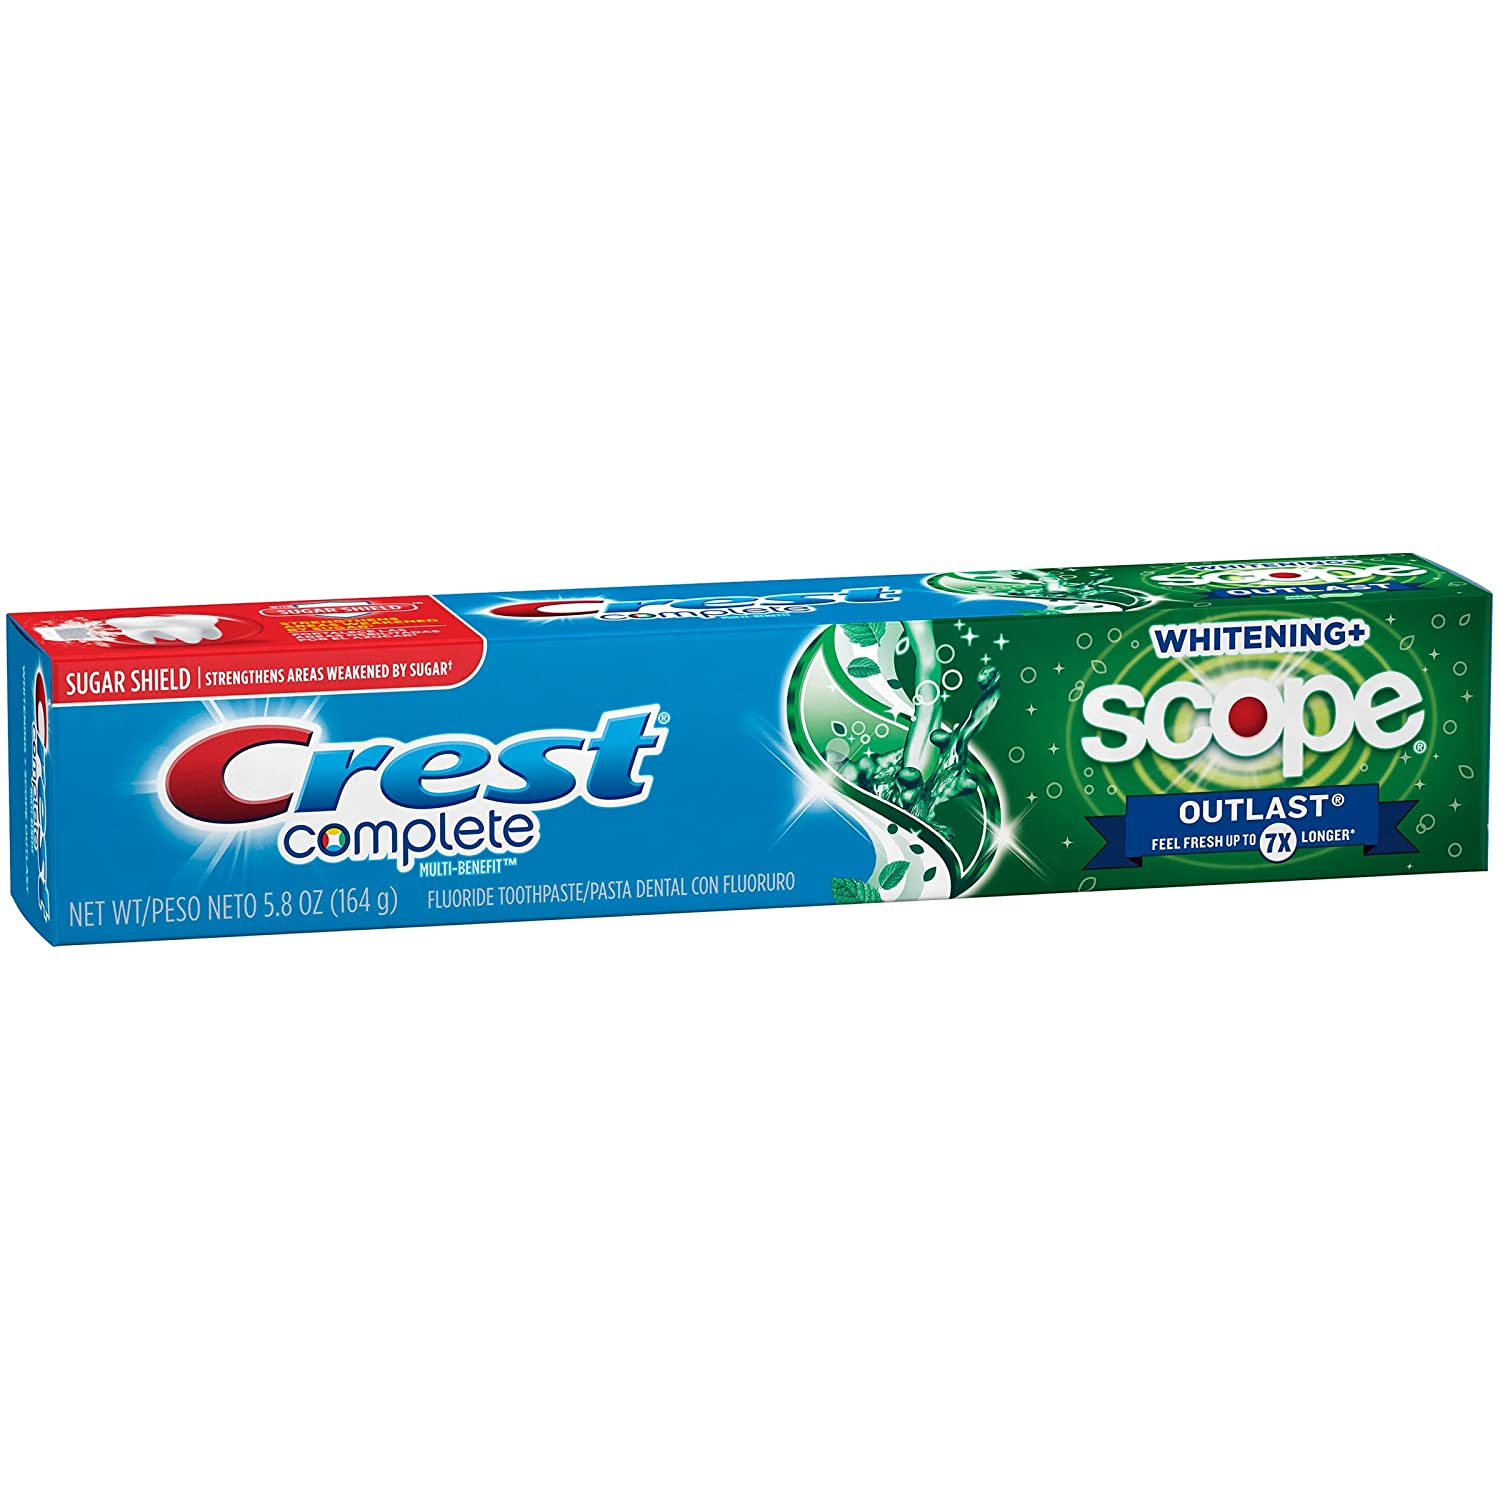 Crest Complete Whitening Scope Outlast 5.8 oz ( Pack of 24)